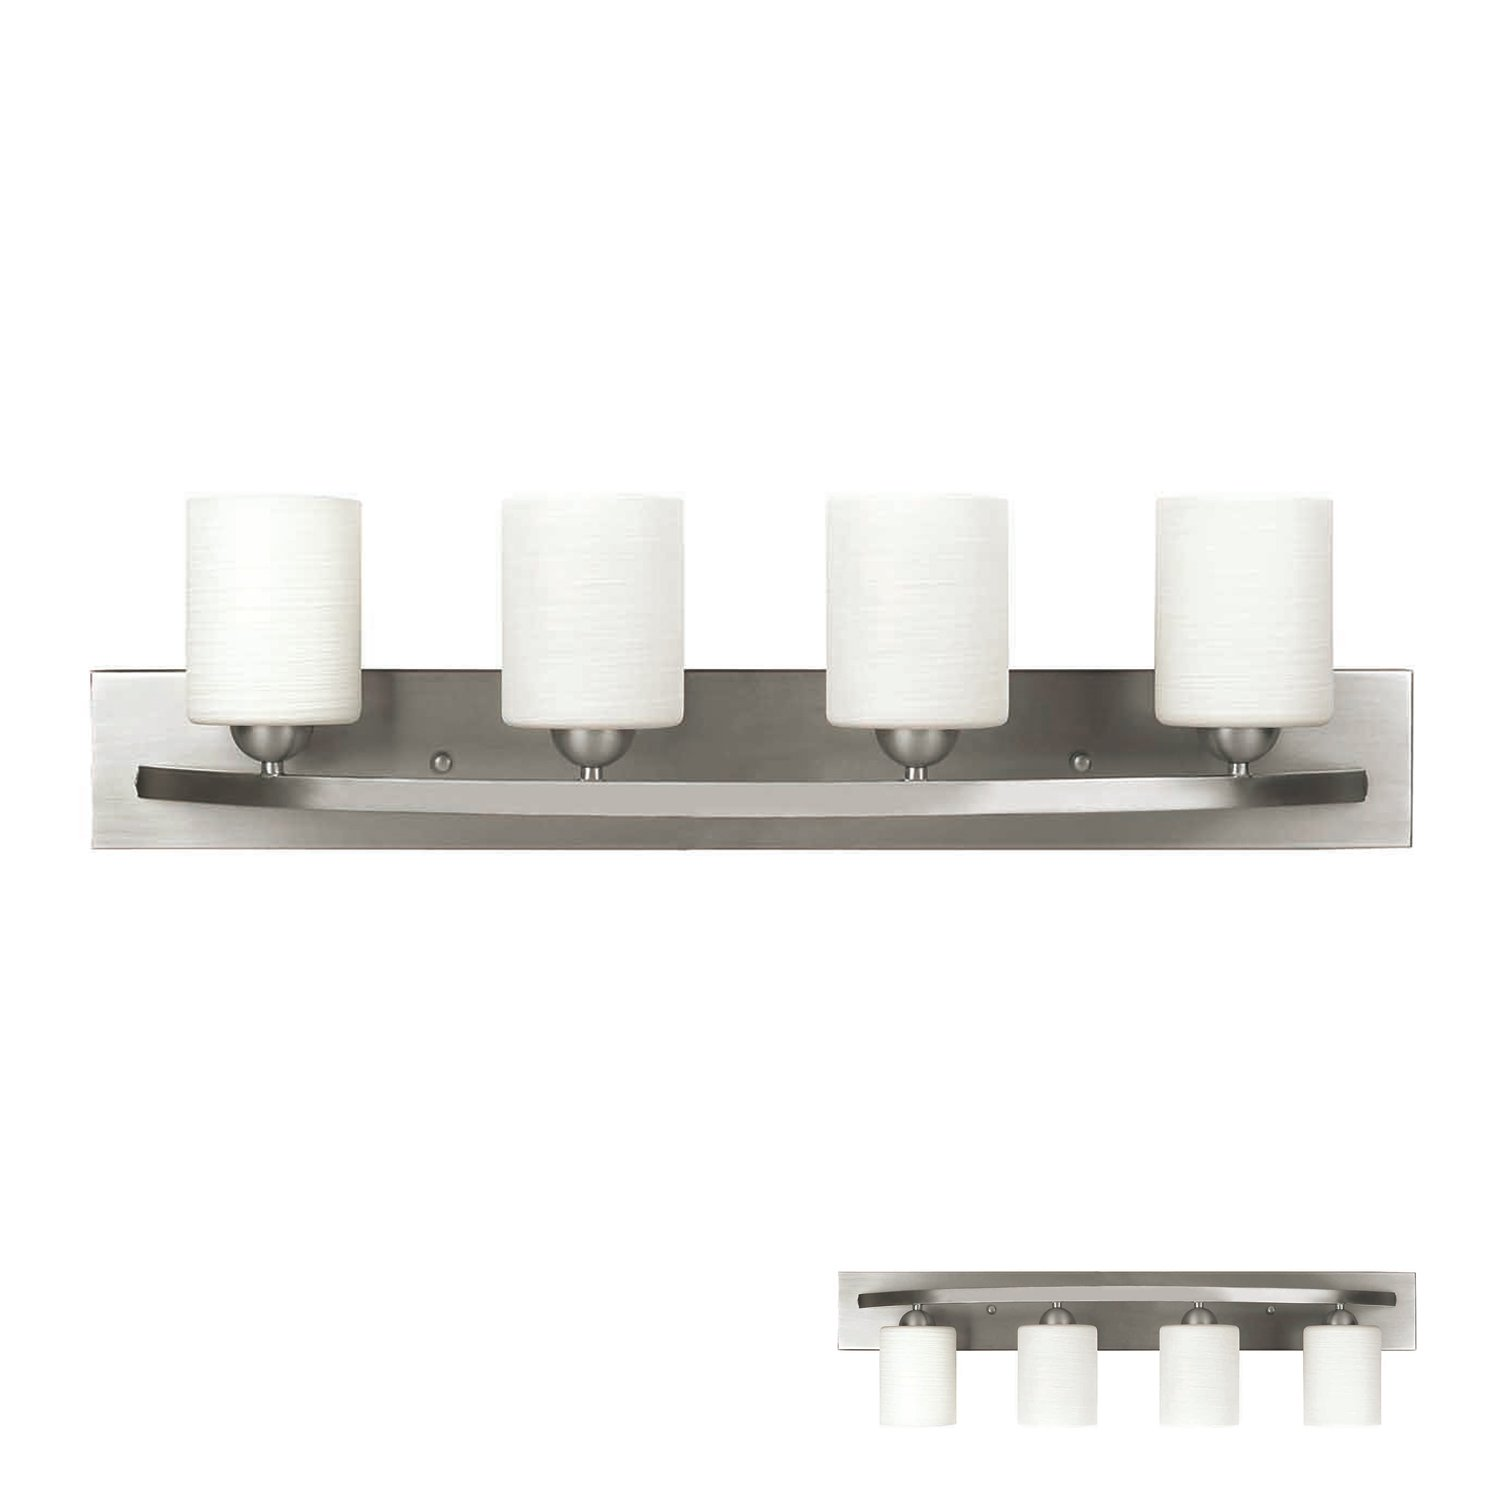 Bathroom vanity lights brushed nickel - Brushed Nickel 4 Globe Vanity Bath Light Bar Interior Lighting Fixture